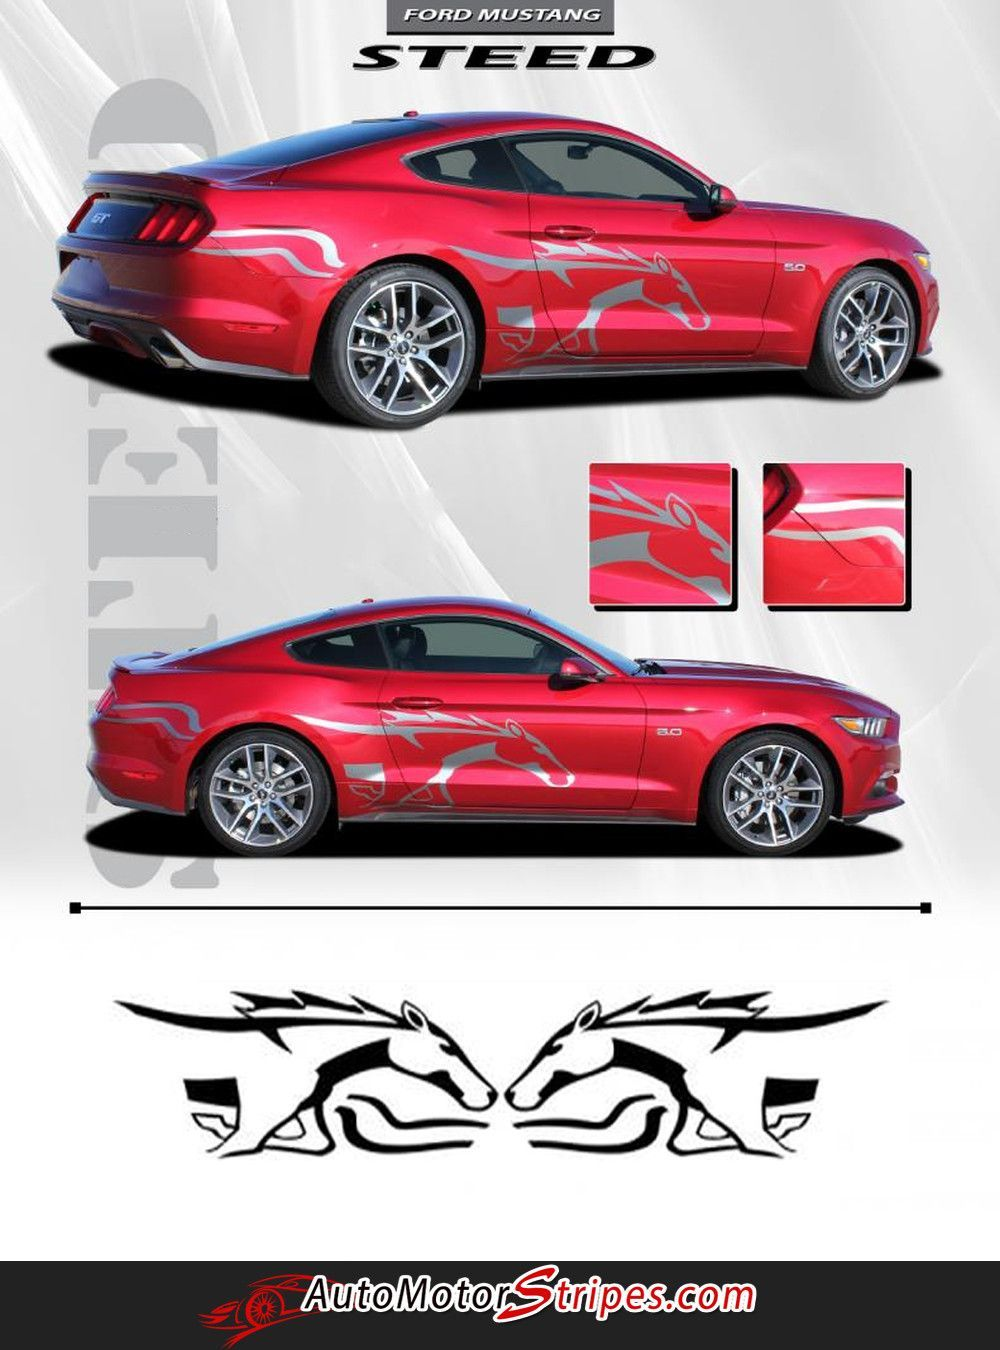 2015 2016 ford mustang pony steed horse outline side stripes vinyl graphics 3m decals